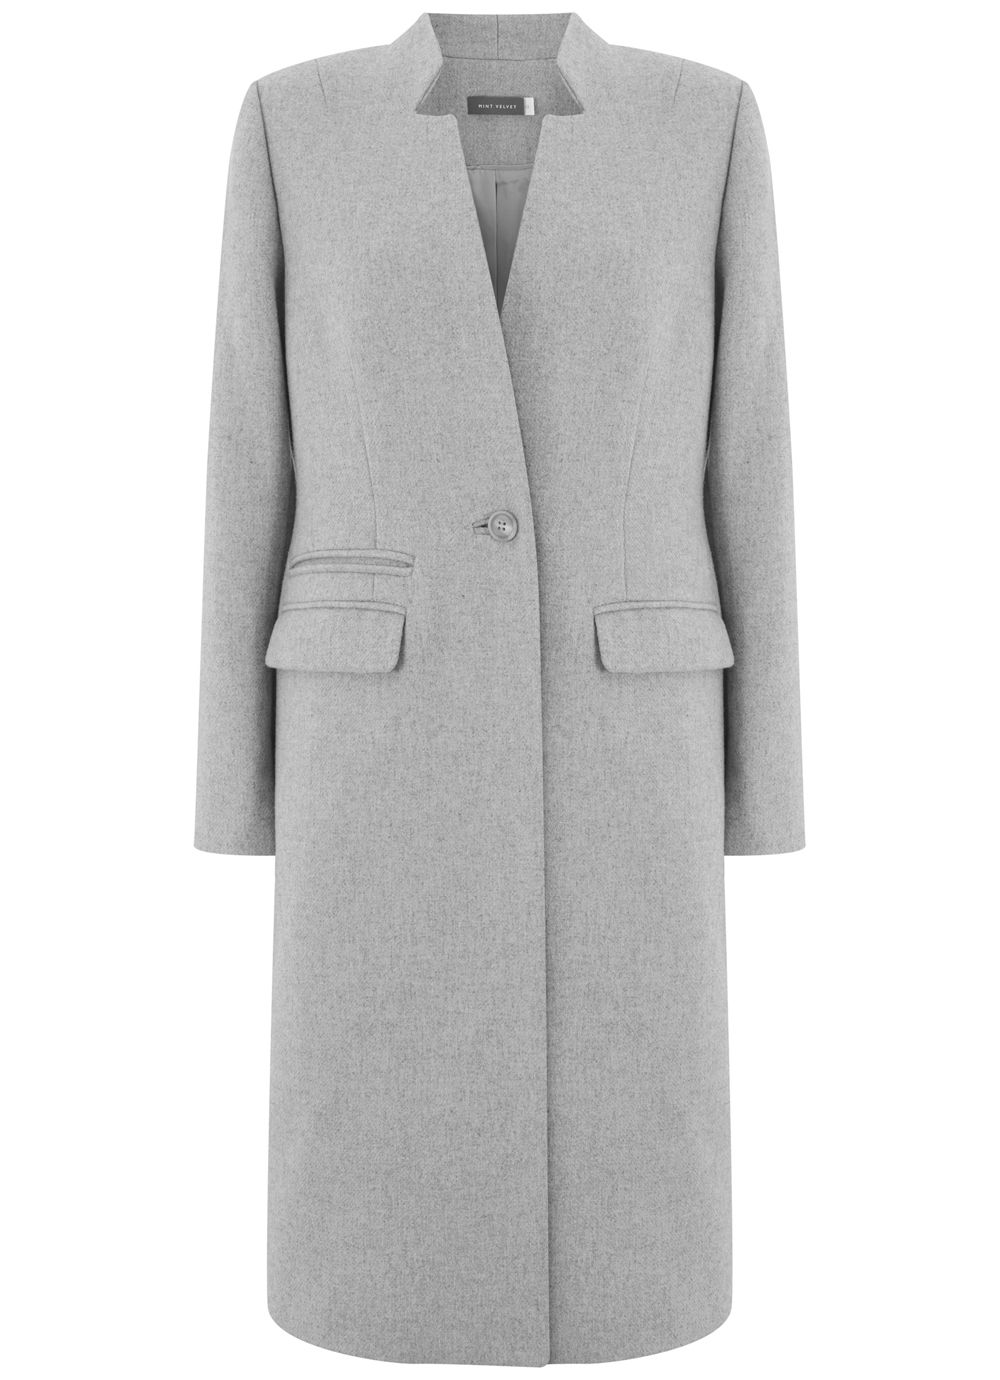 Ladies winter coats at house of fraser